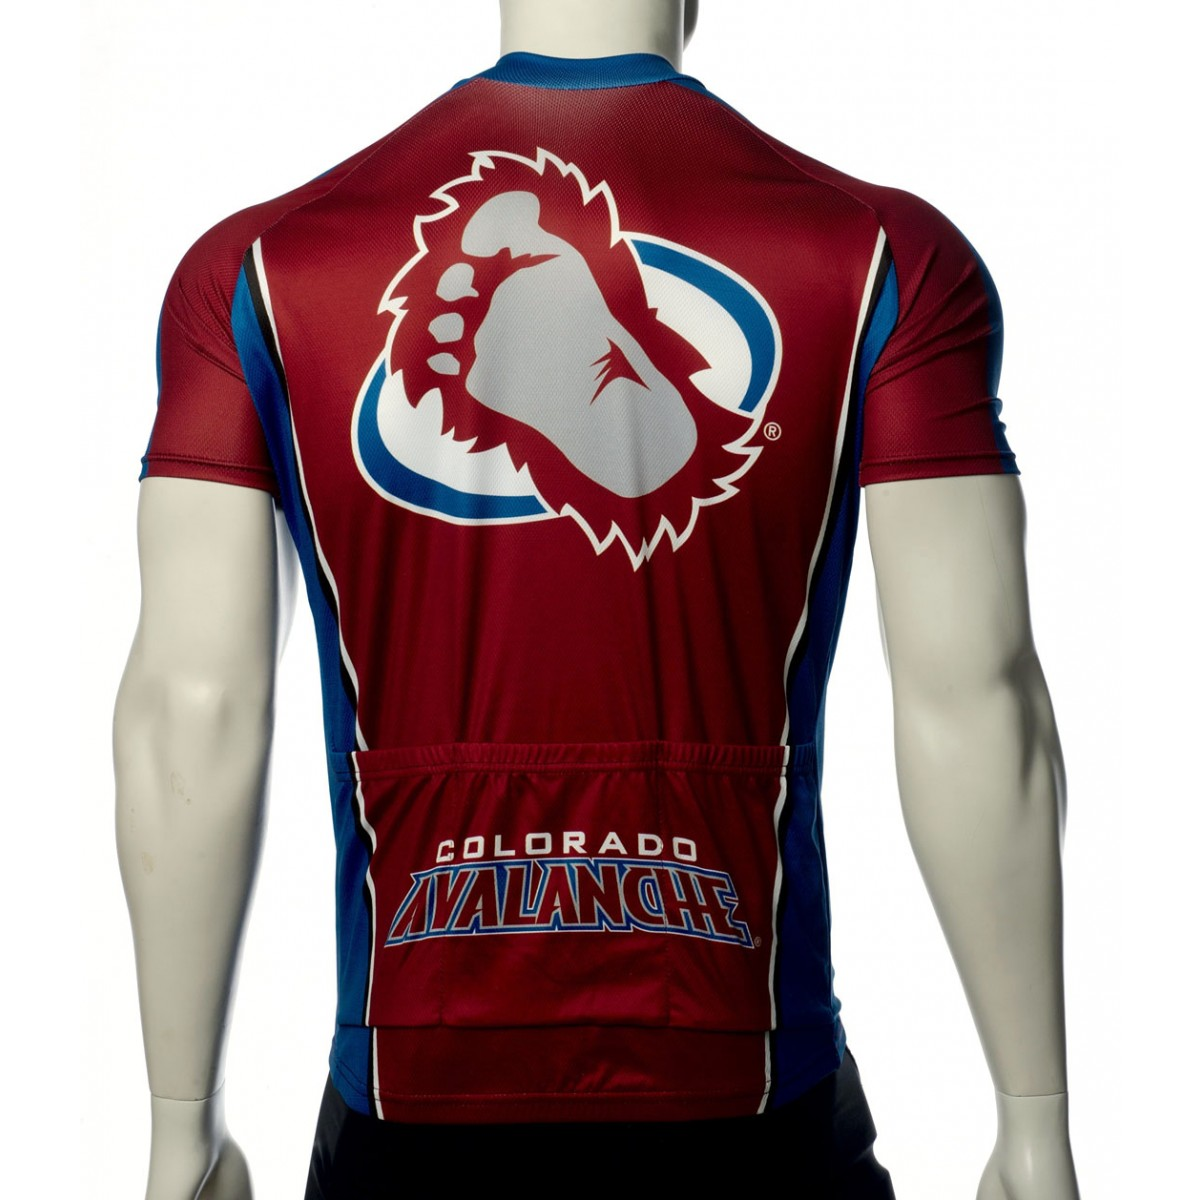 NHL Team Colorado Avalanche Cycling Jersey Short Sleeve